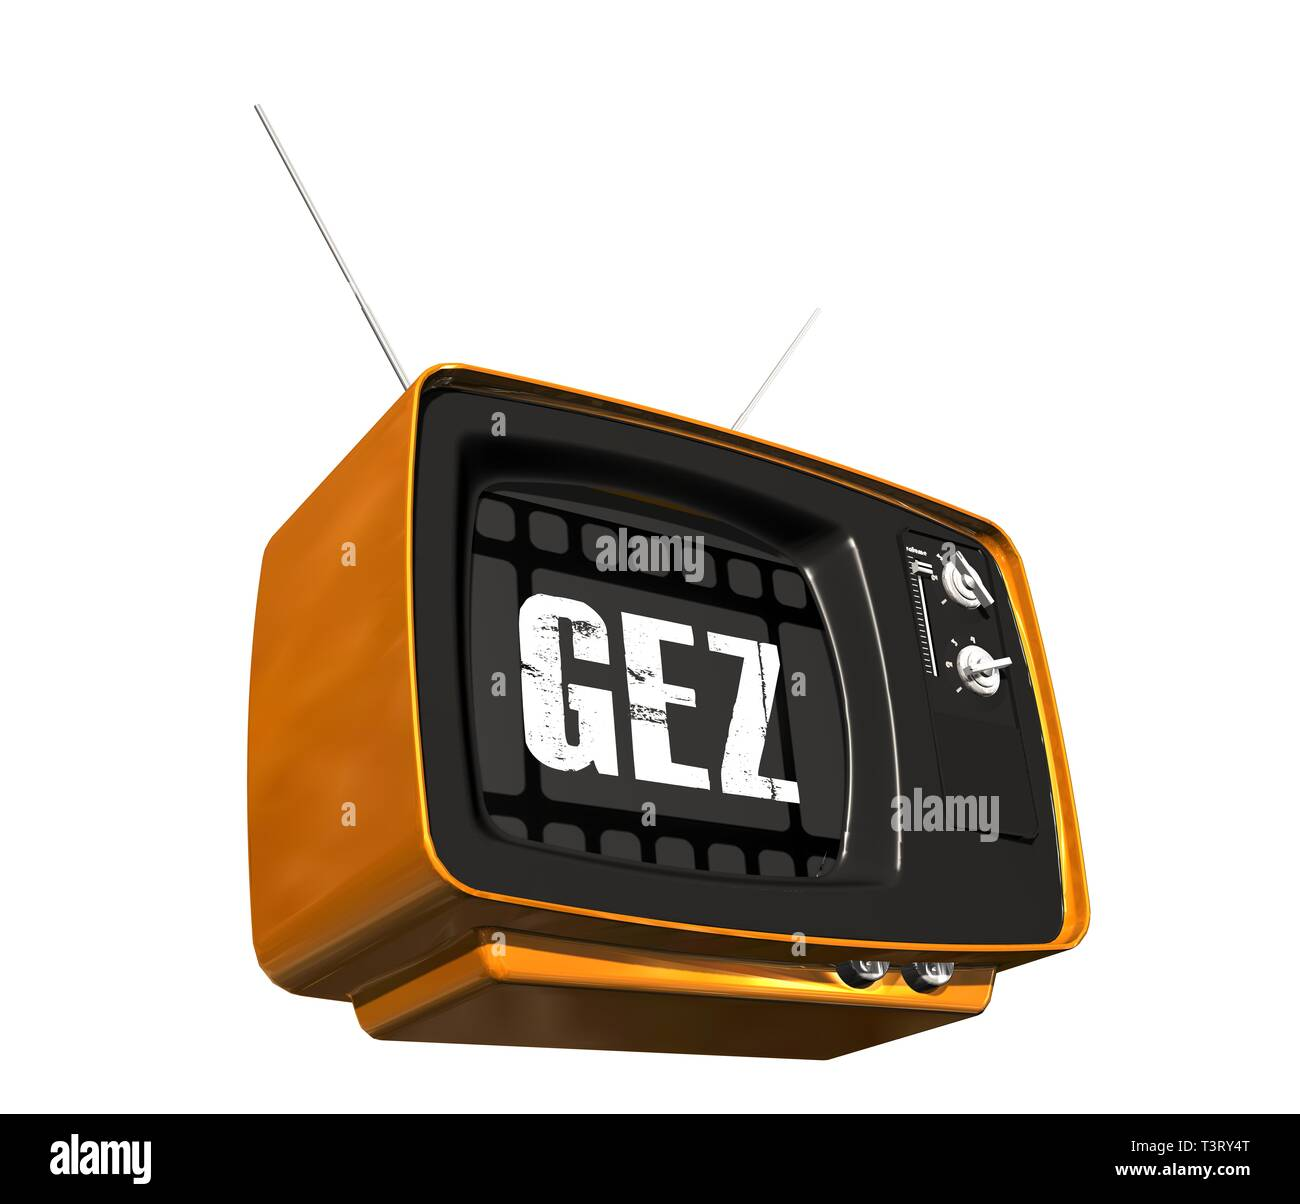 Retro old TV receiver - GEZ on the screen - Stock Image